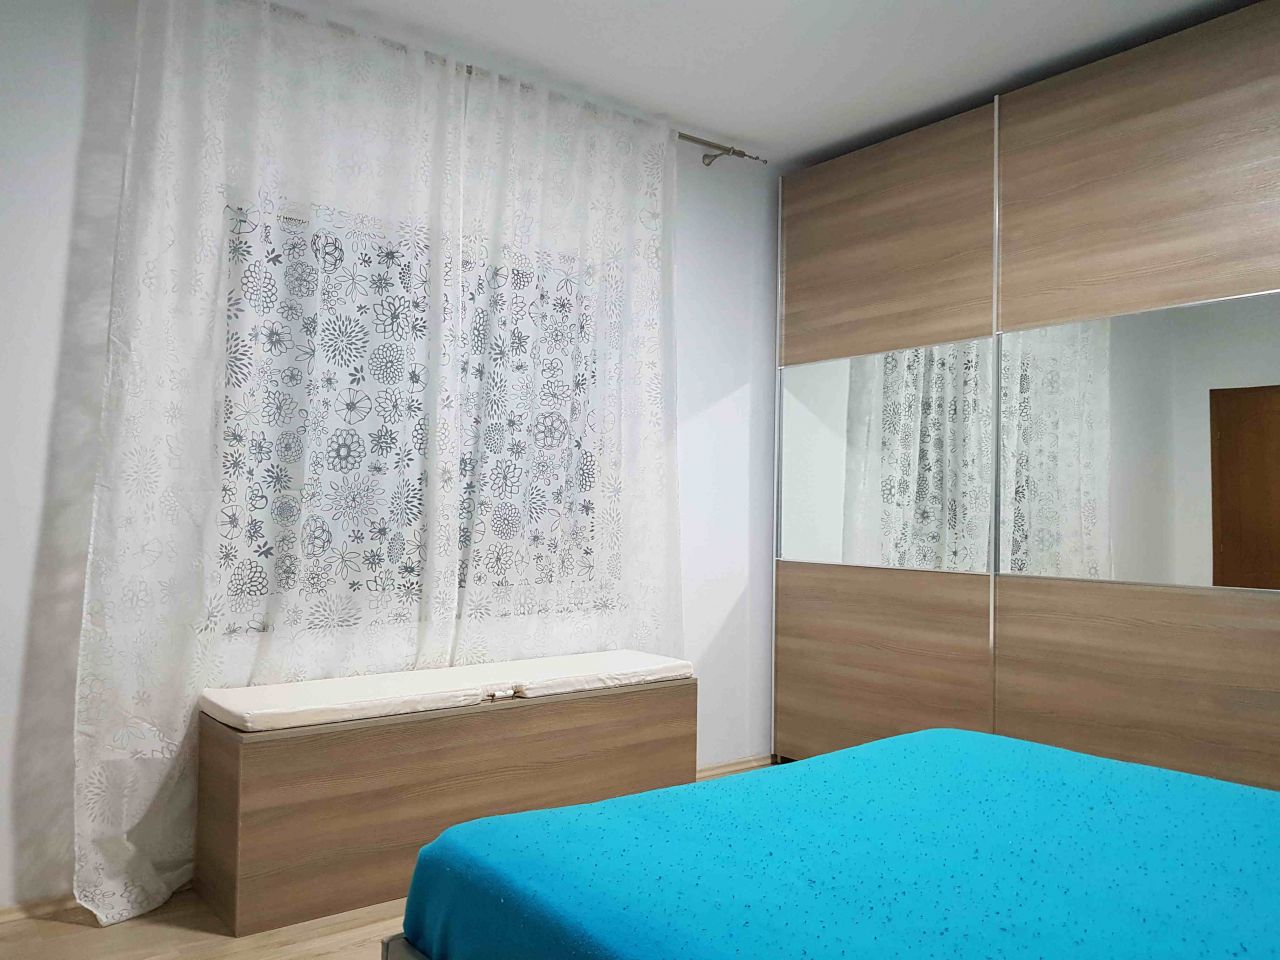 One Bedroom Apartment for Rent in Tirana Myslym Shyri street